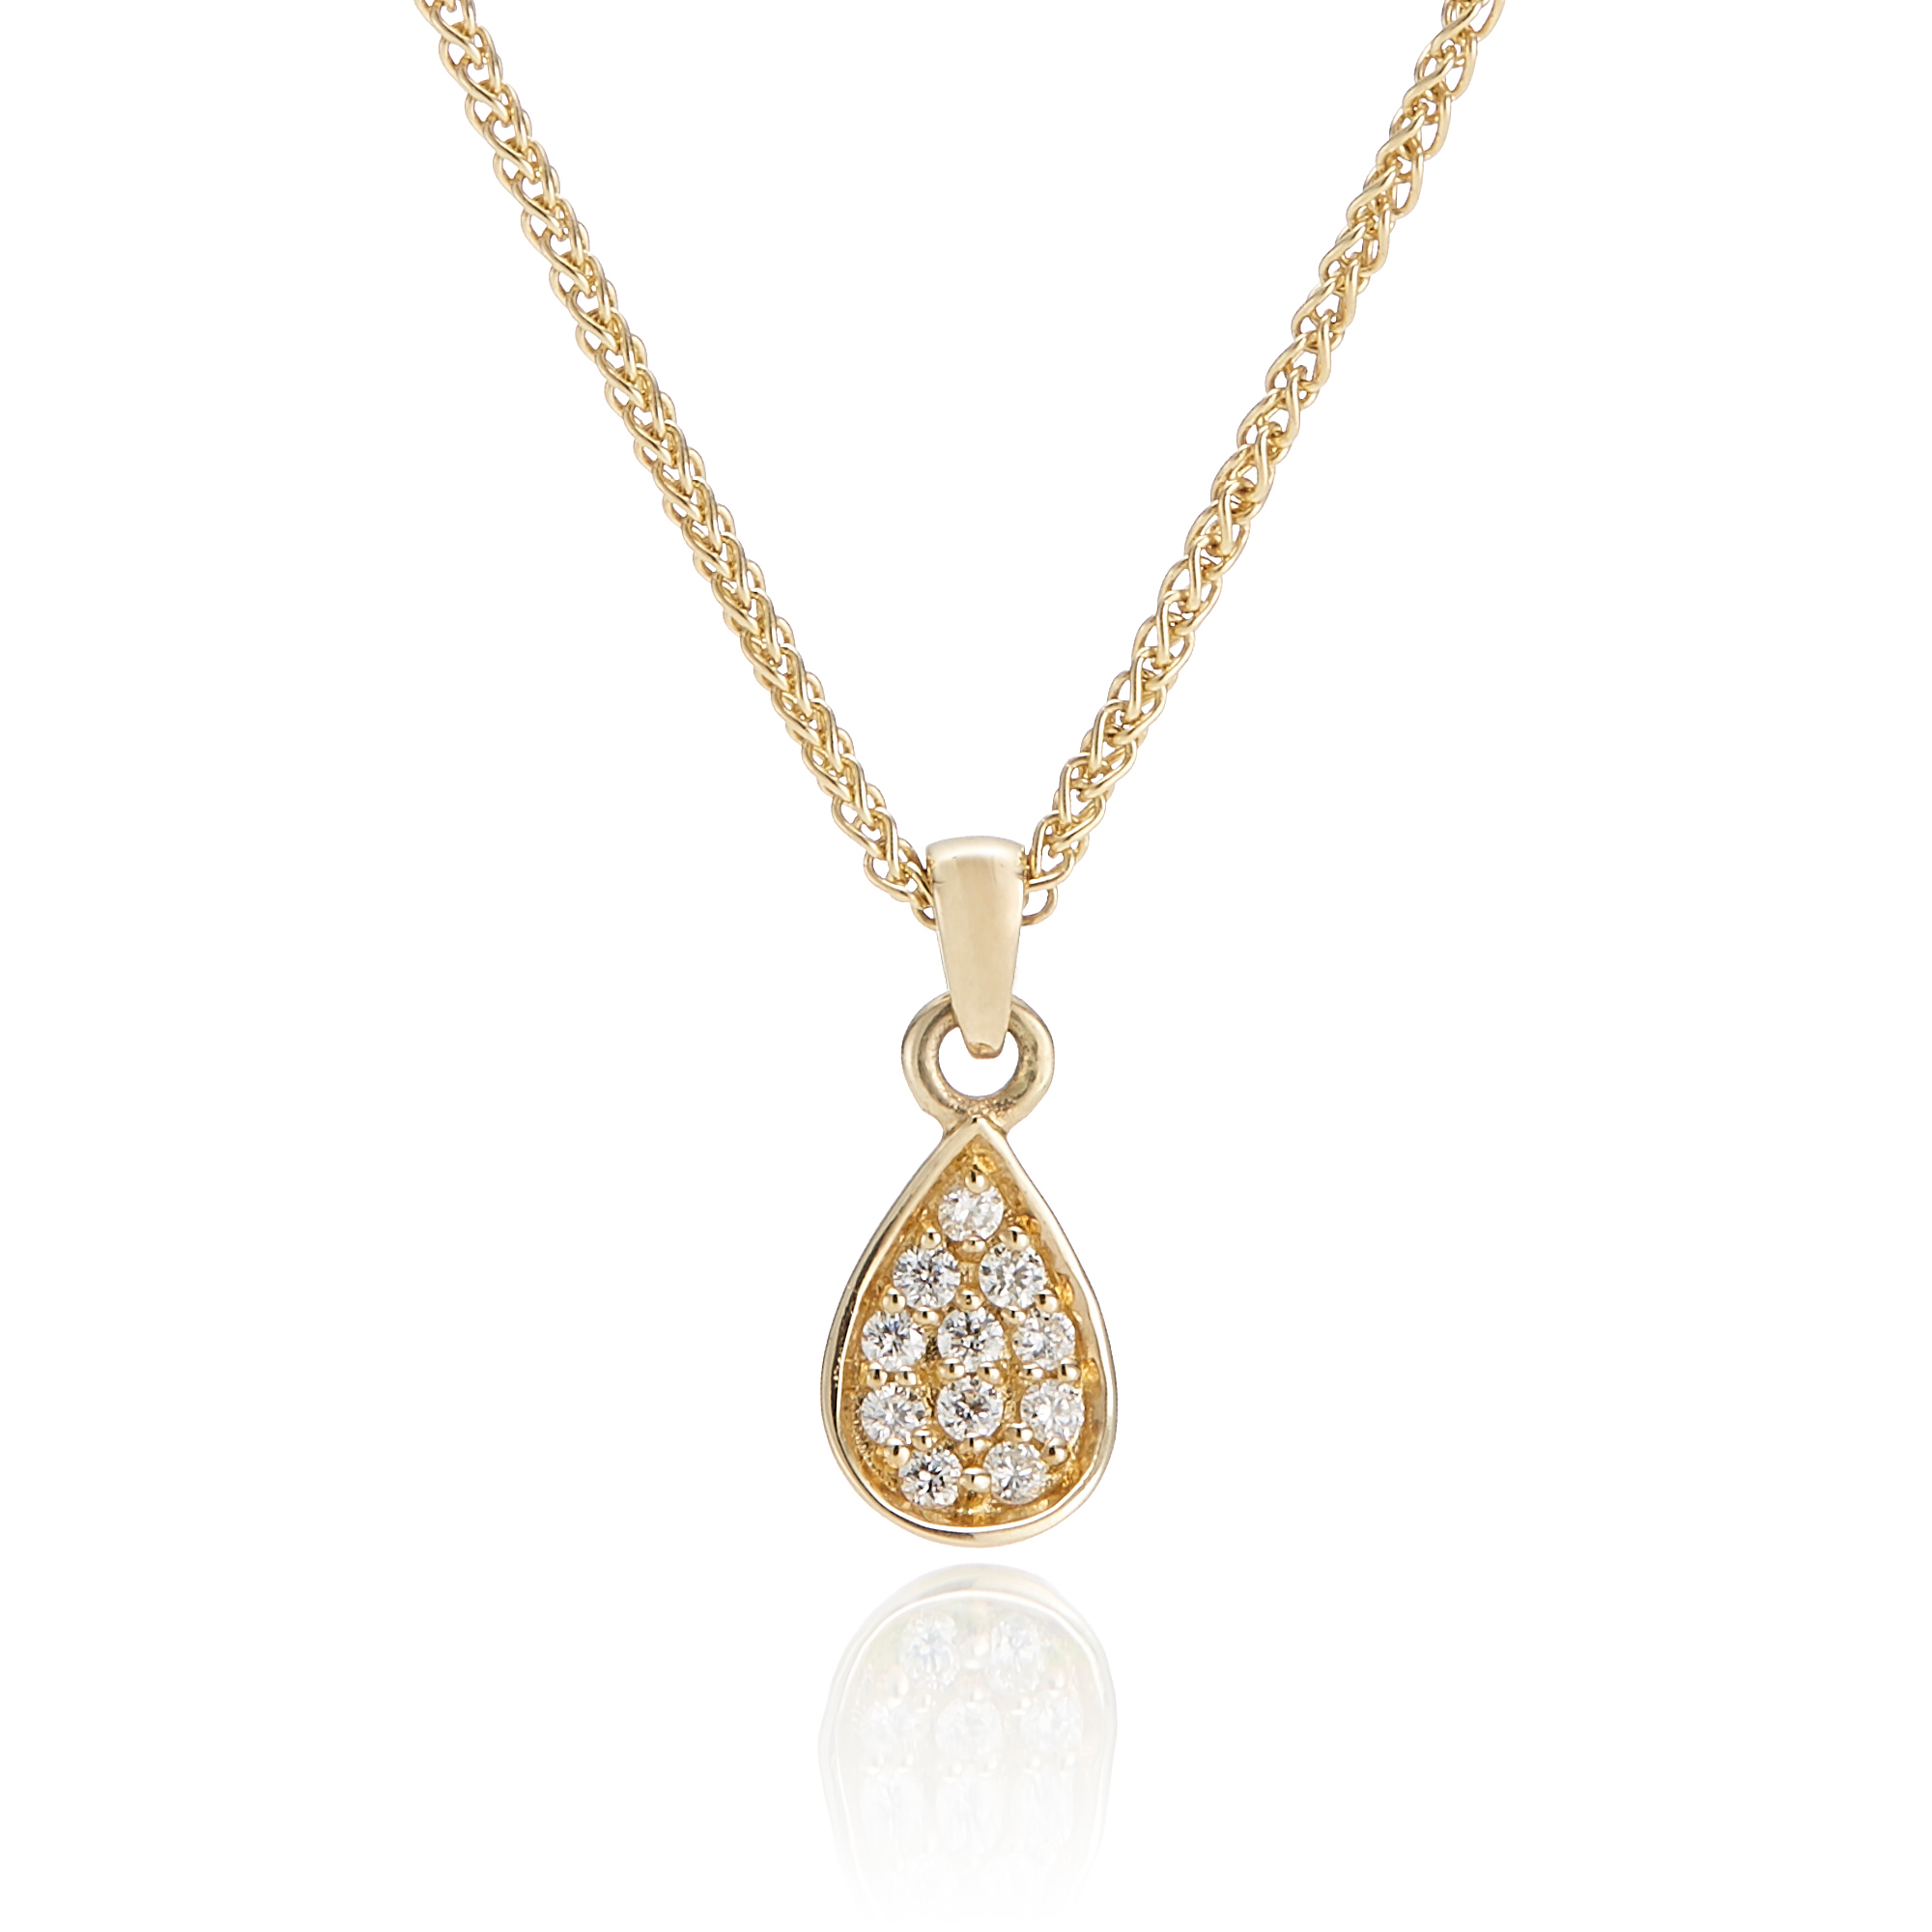 Gump's Petite Pavé Diamond Petal Necklace